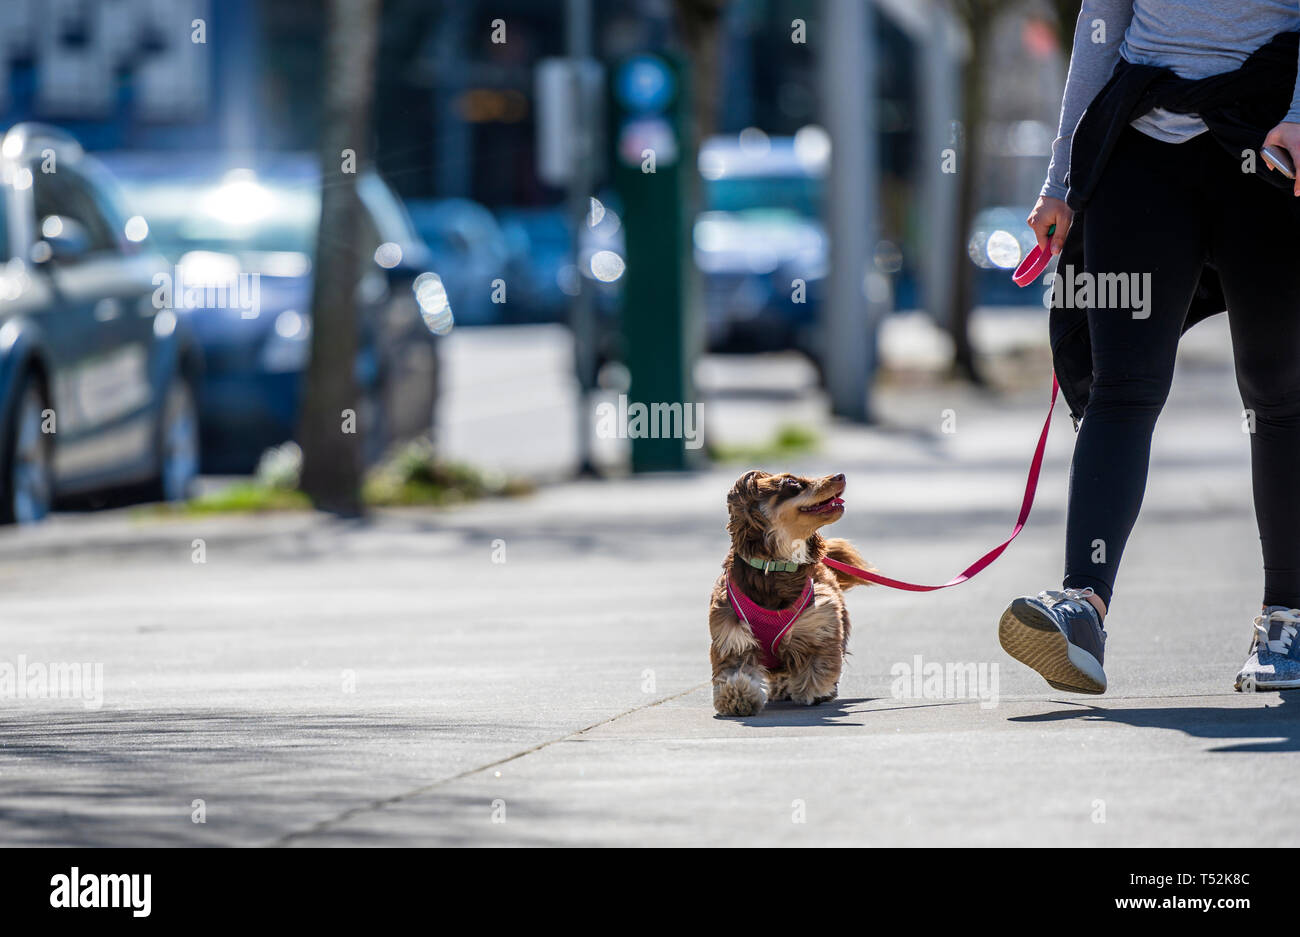 An elegant young girl in sportswear walks her small, playful dog on a leash - a shaggy terrier dog, who merrily runs down the street with devotion loo - Stock Image